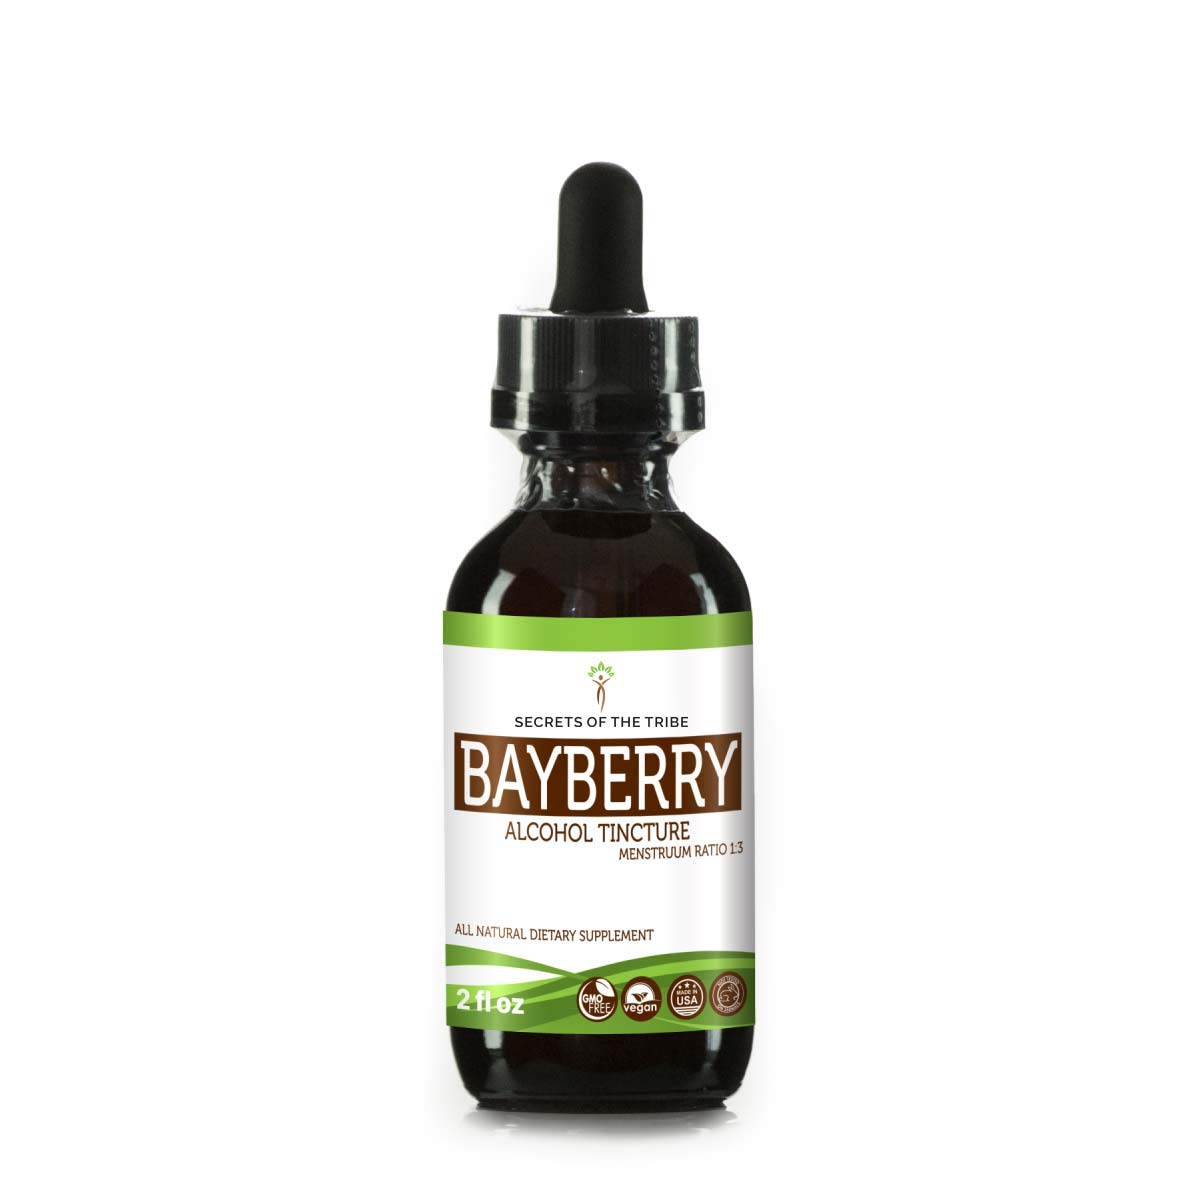 Amazon.com: Bayberry Tincture Alcohol Extract, Organic Bayberry ...